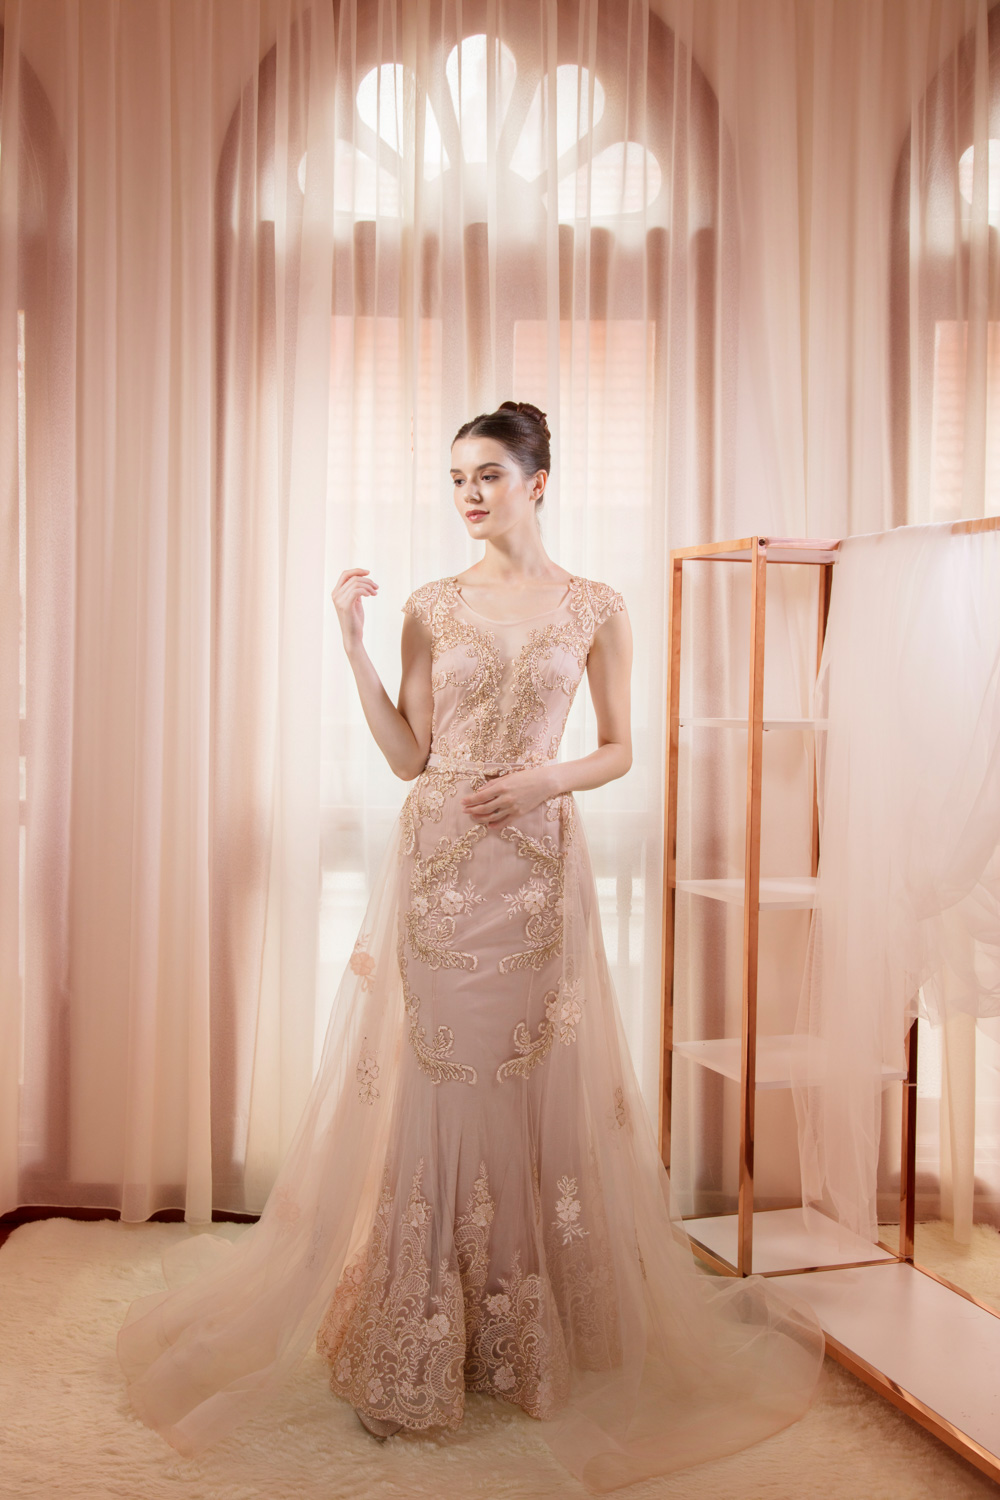 Champagne coloured evening gown by CCM Wedding